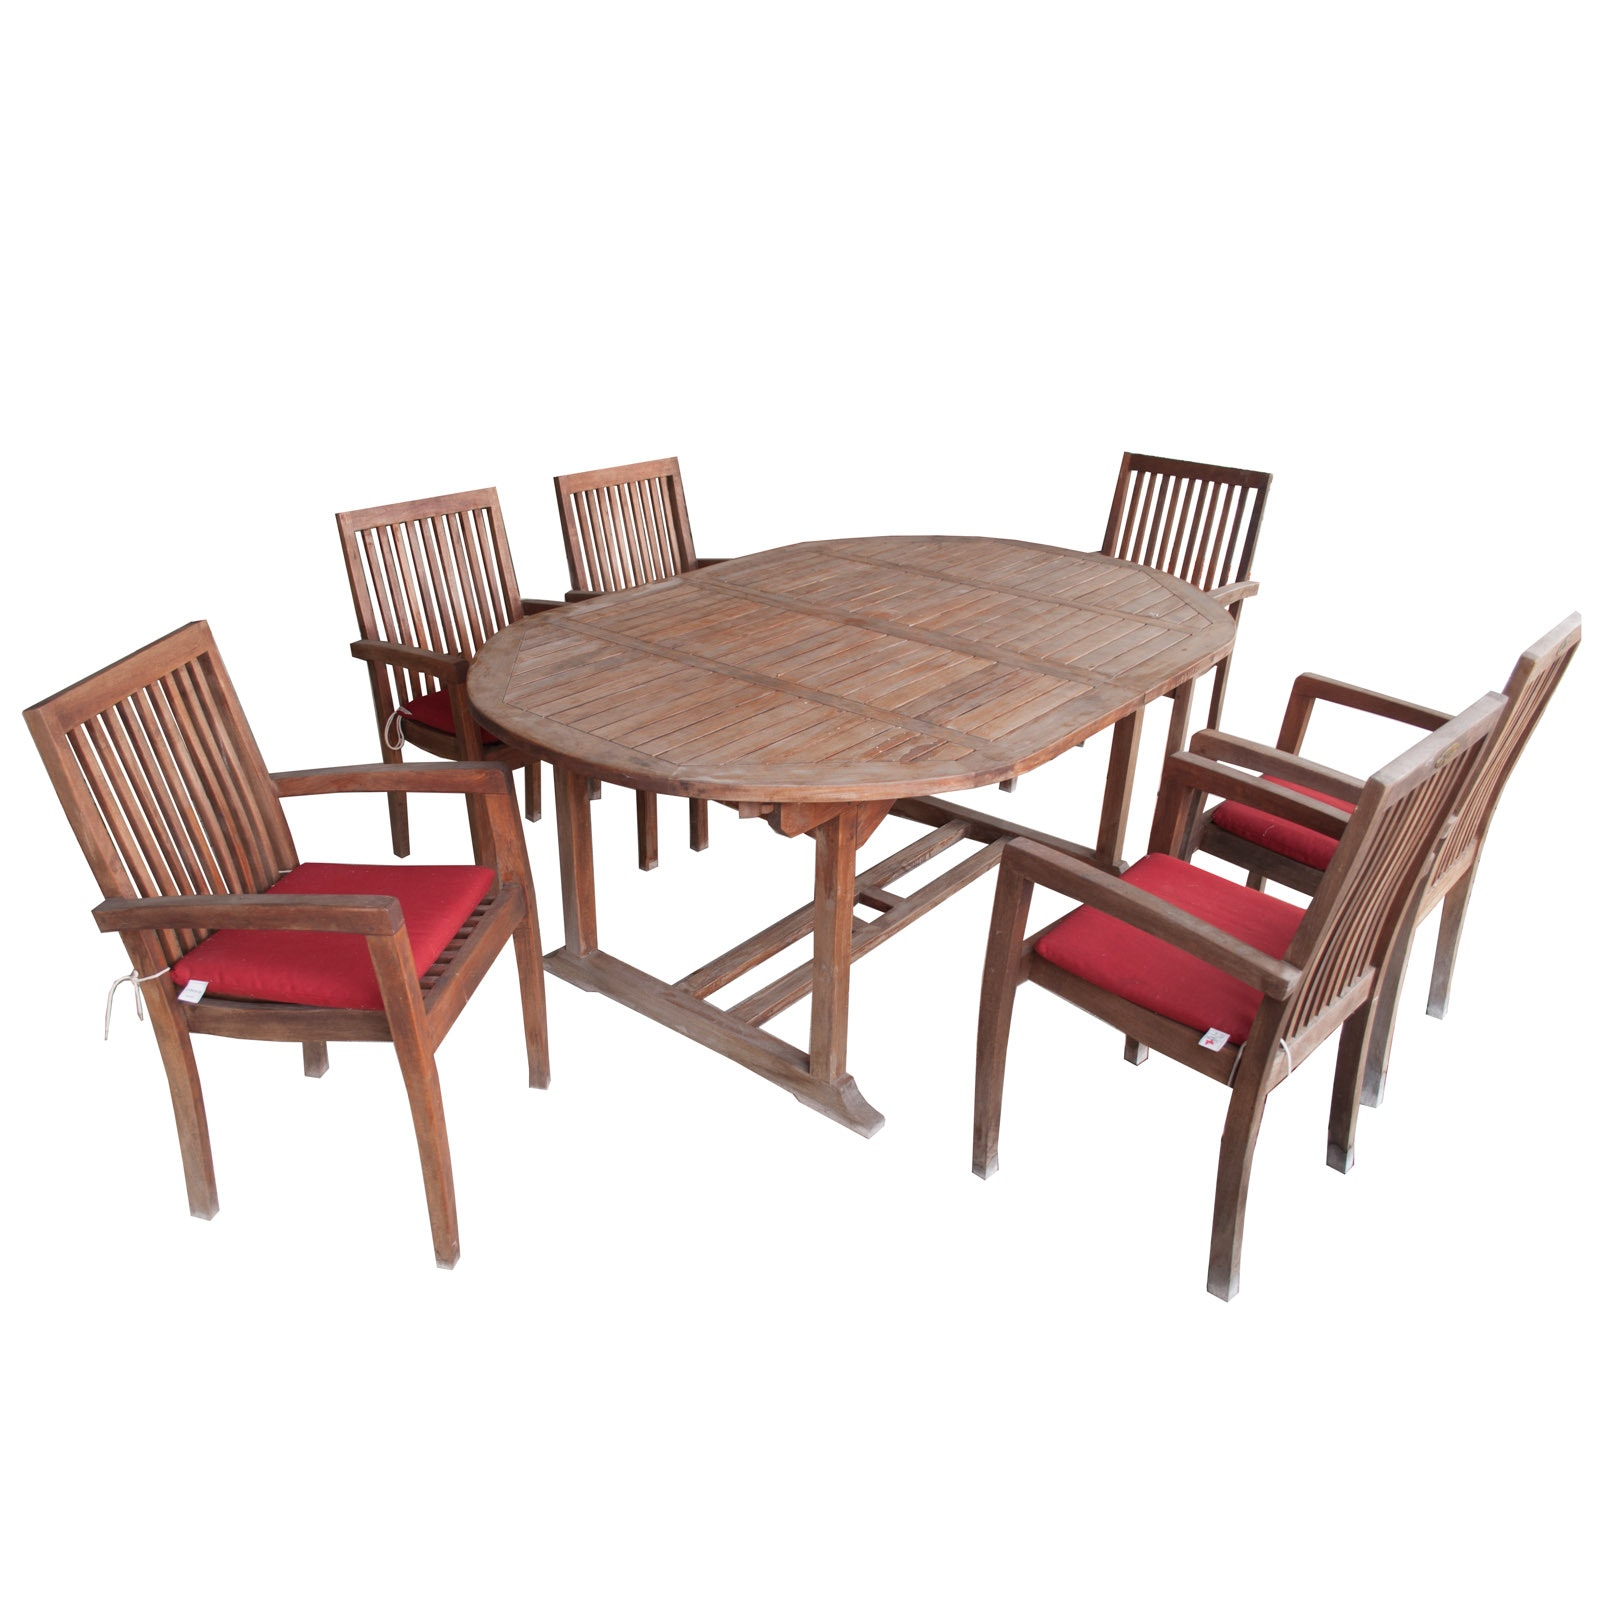 Royal Arrow Teak Wood Patio Table Chairs with Red Accent Pillows